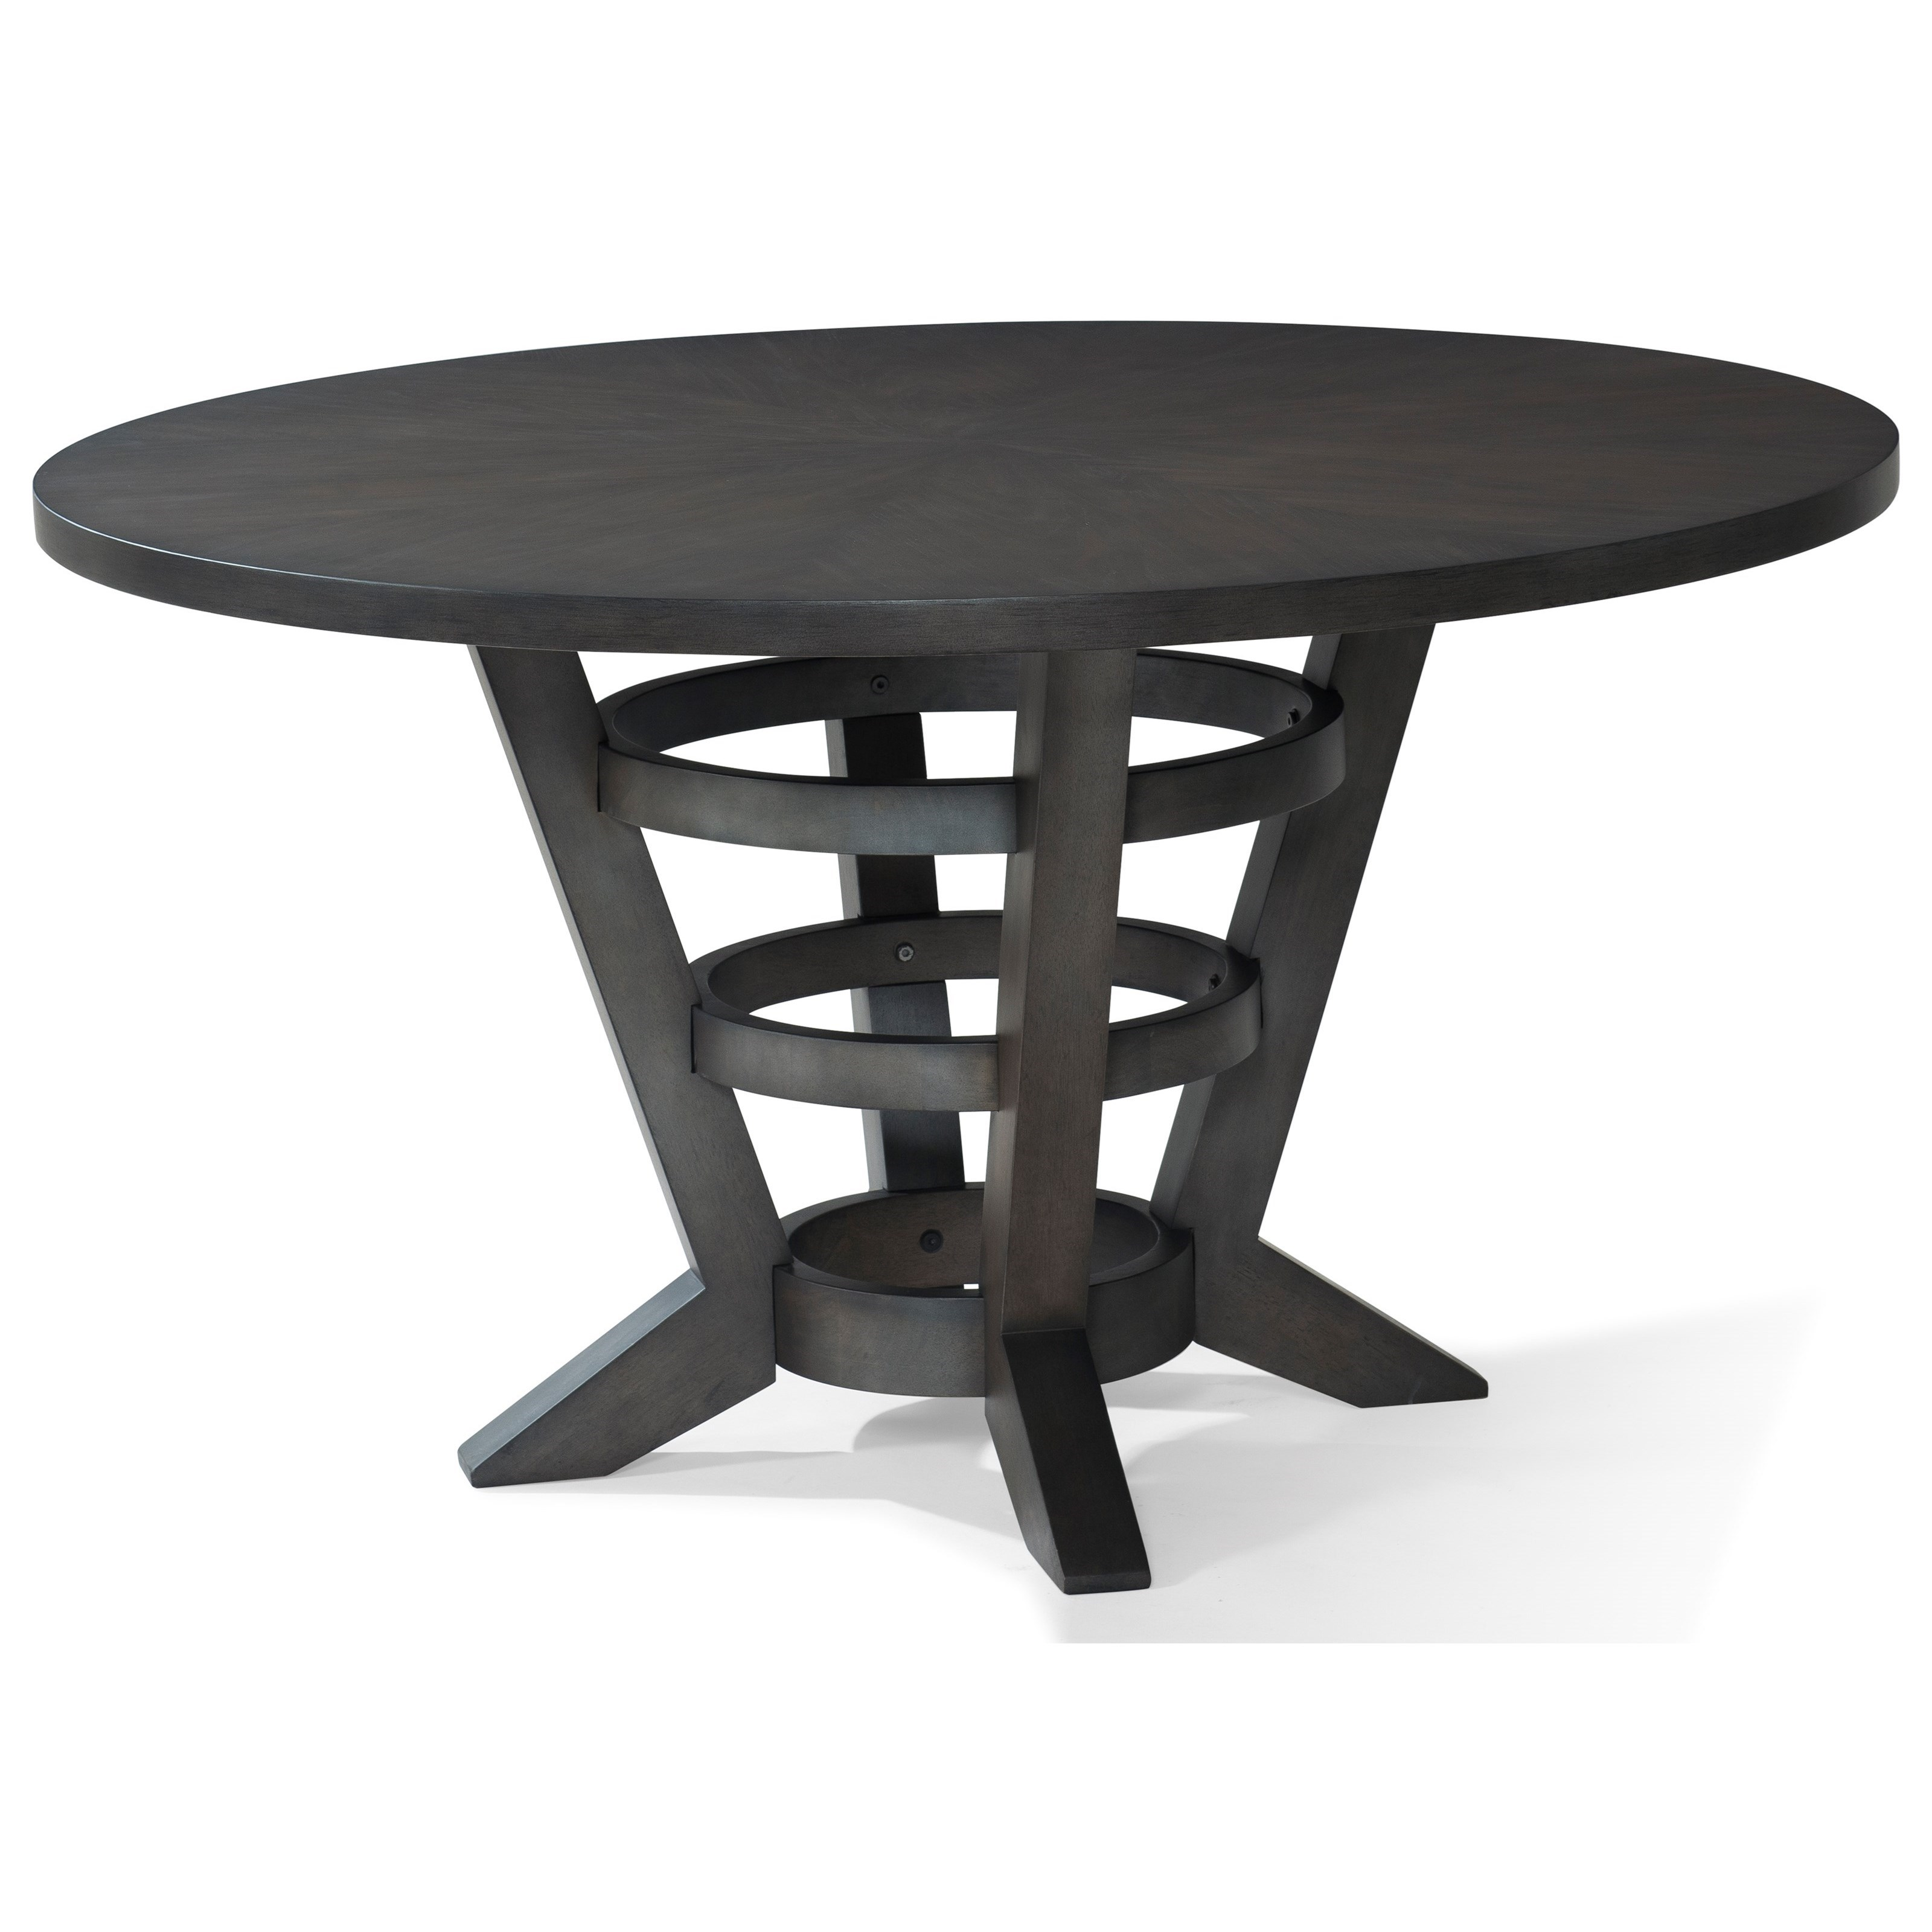 """Trisha Yearwood Home Collection by Klaussner Music City """"Hello I'm Gone"""" Dining Room Table - Item Number: 925-054 DRT"""